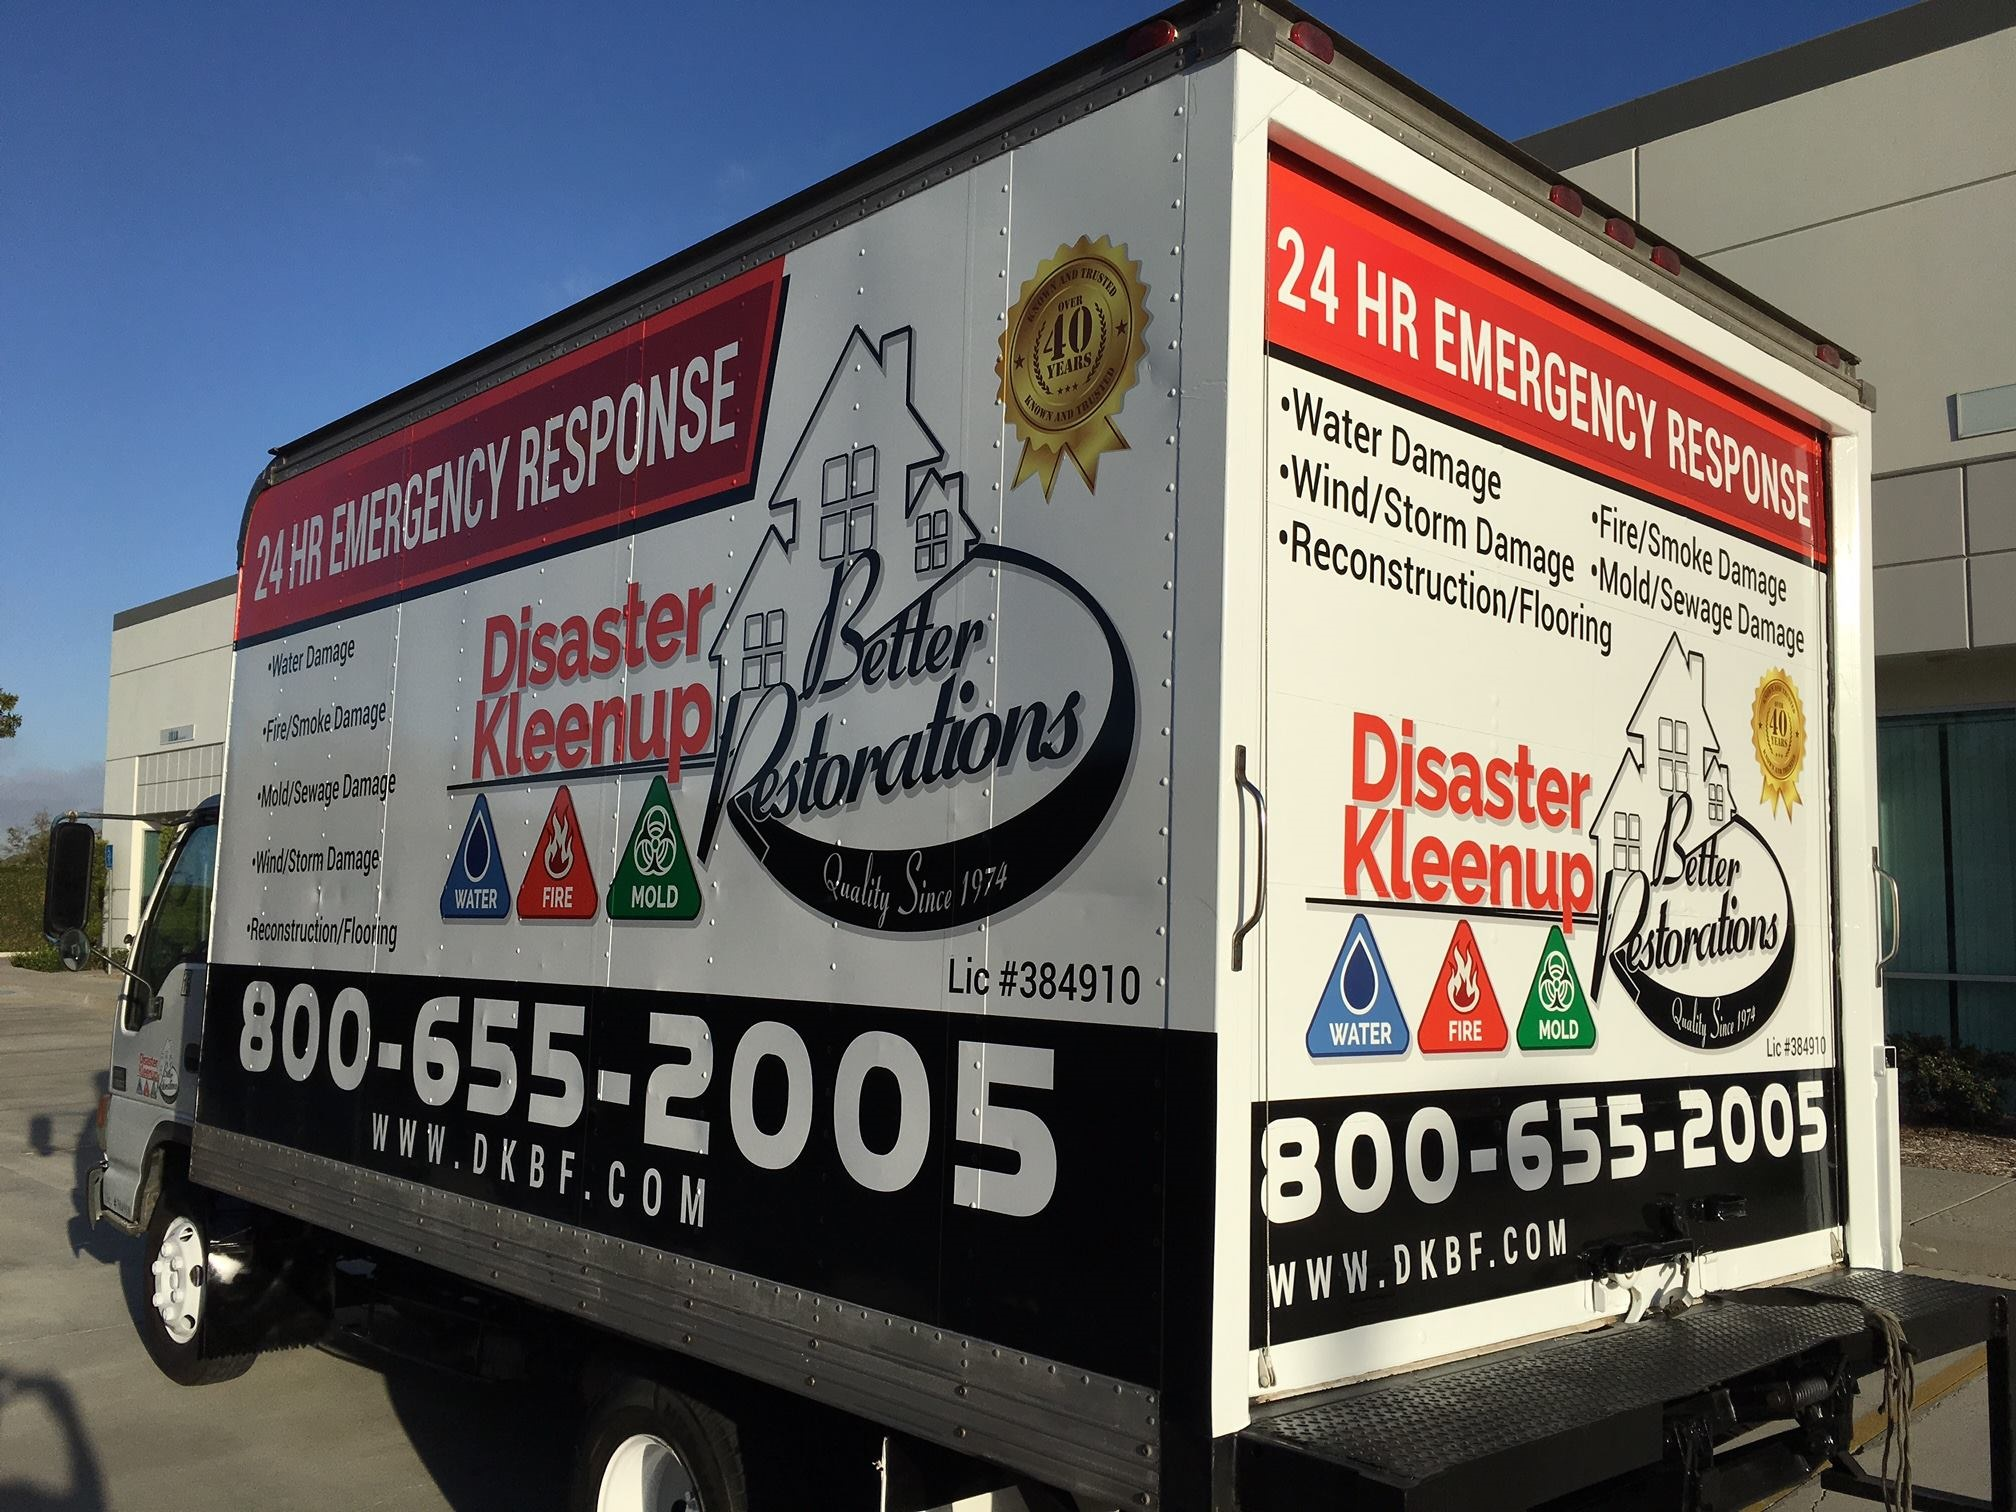 Disaster Kleenup Better Restorations service truck parked in front of a business